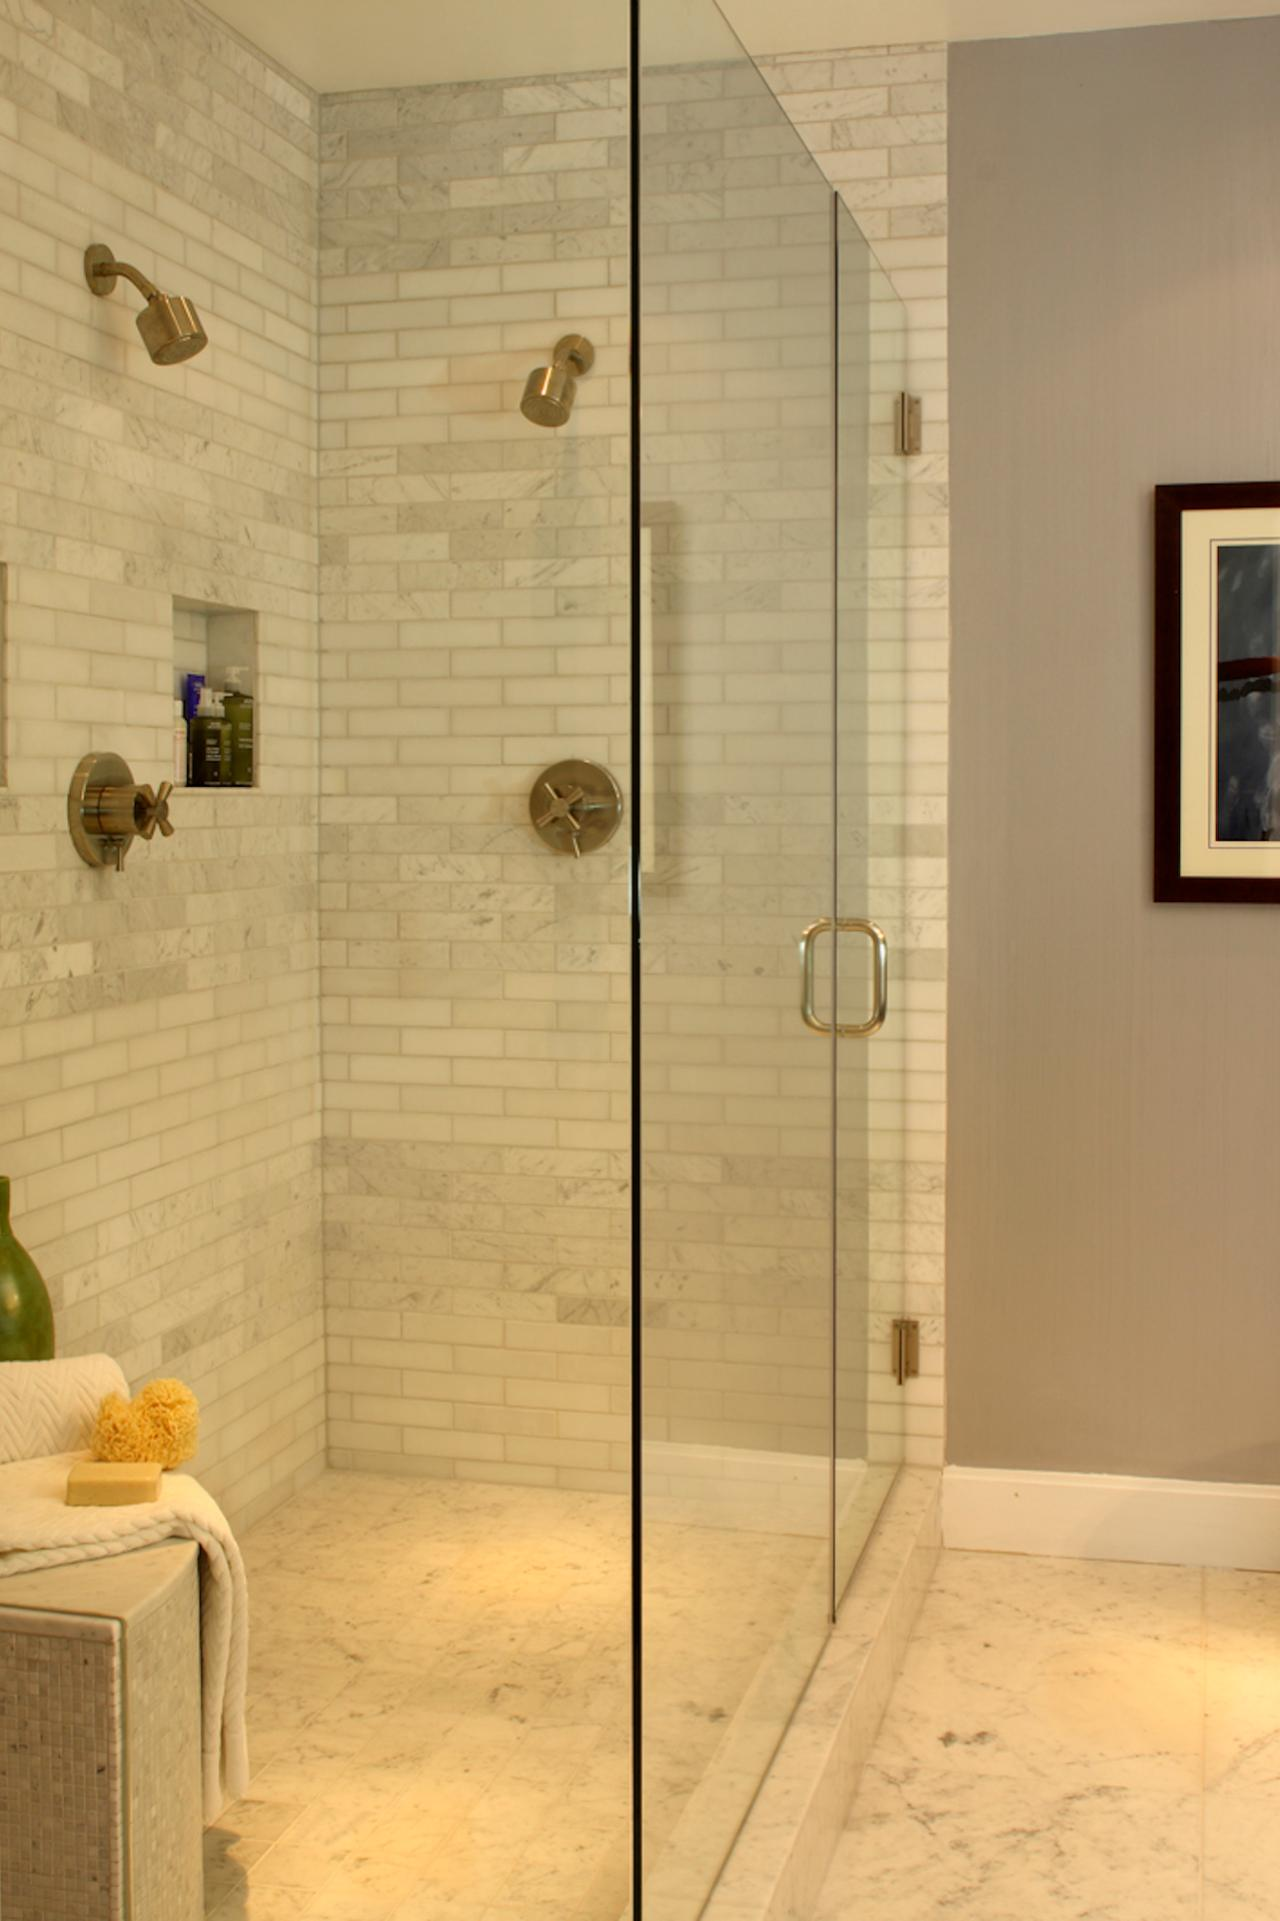 Contemporary Master Bathroom With Marble Subway-Tiled Shower | HGTV